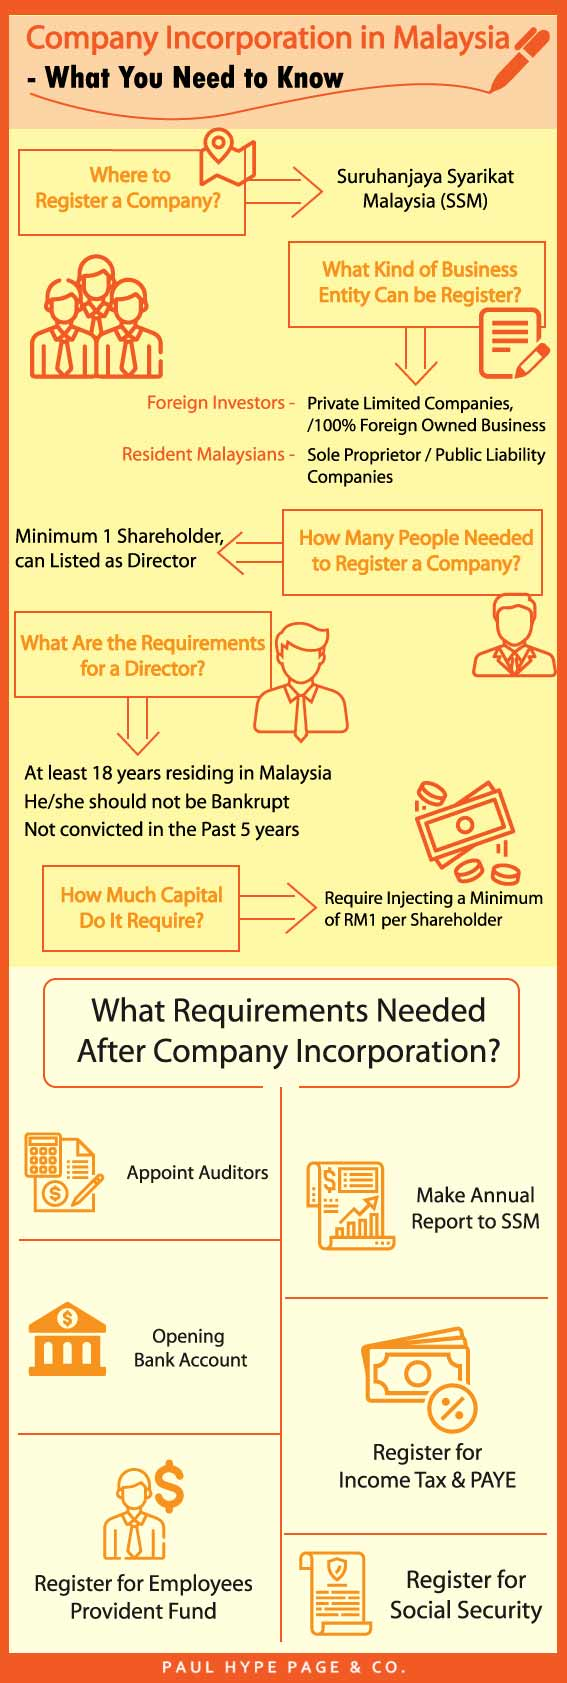 Company Incorporation in Malaysia Infographic